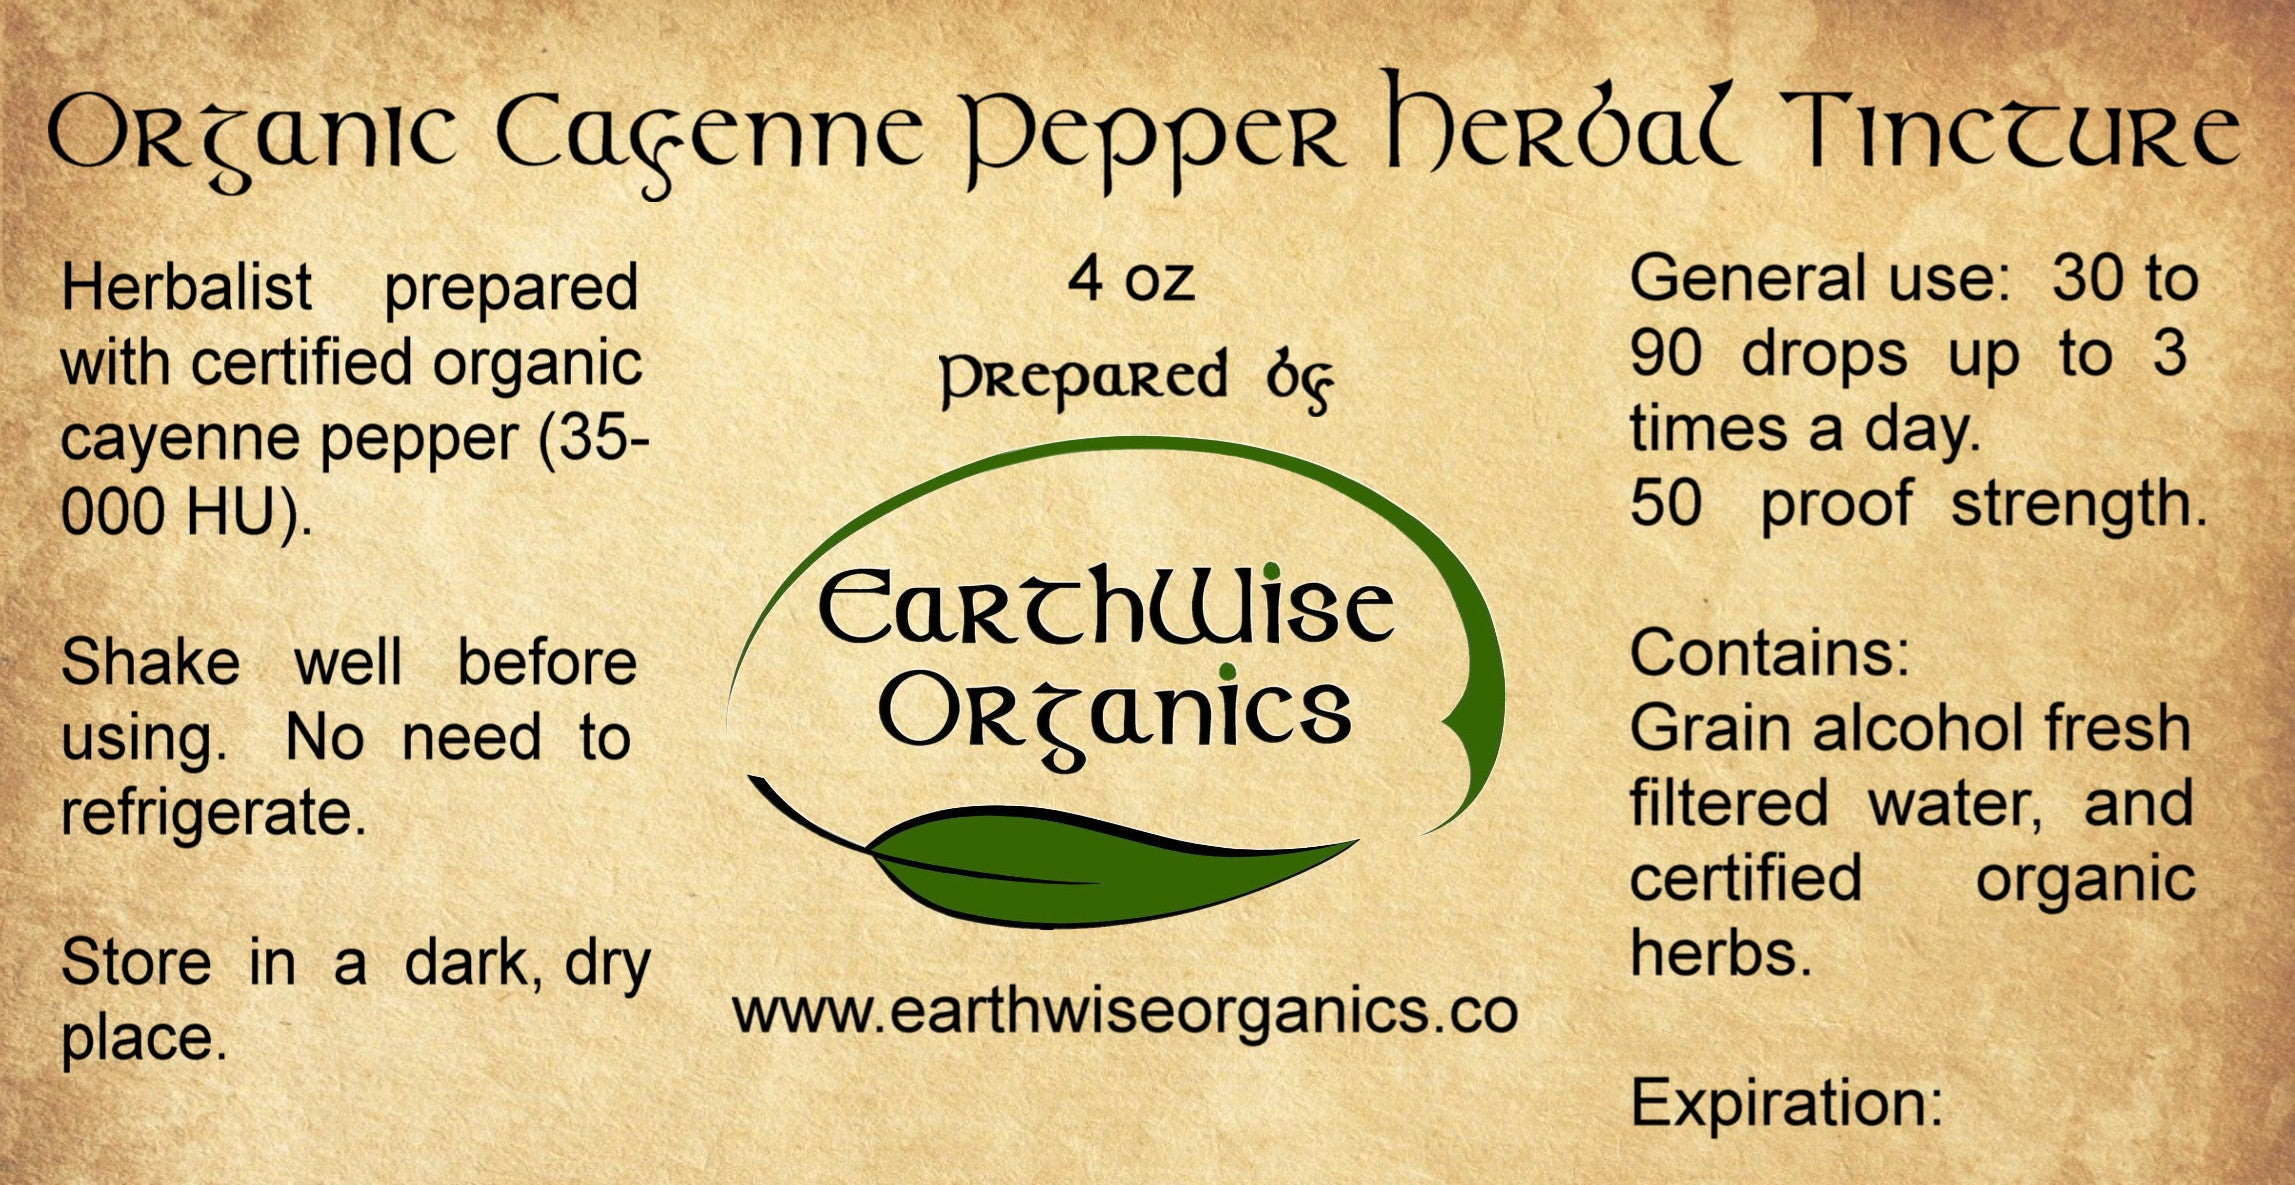 cayenne pepper organic herbal tincture label